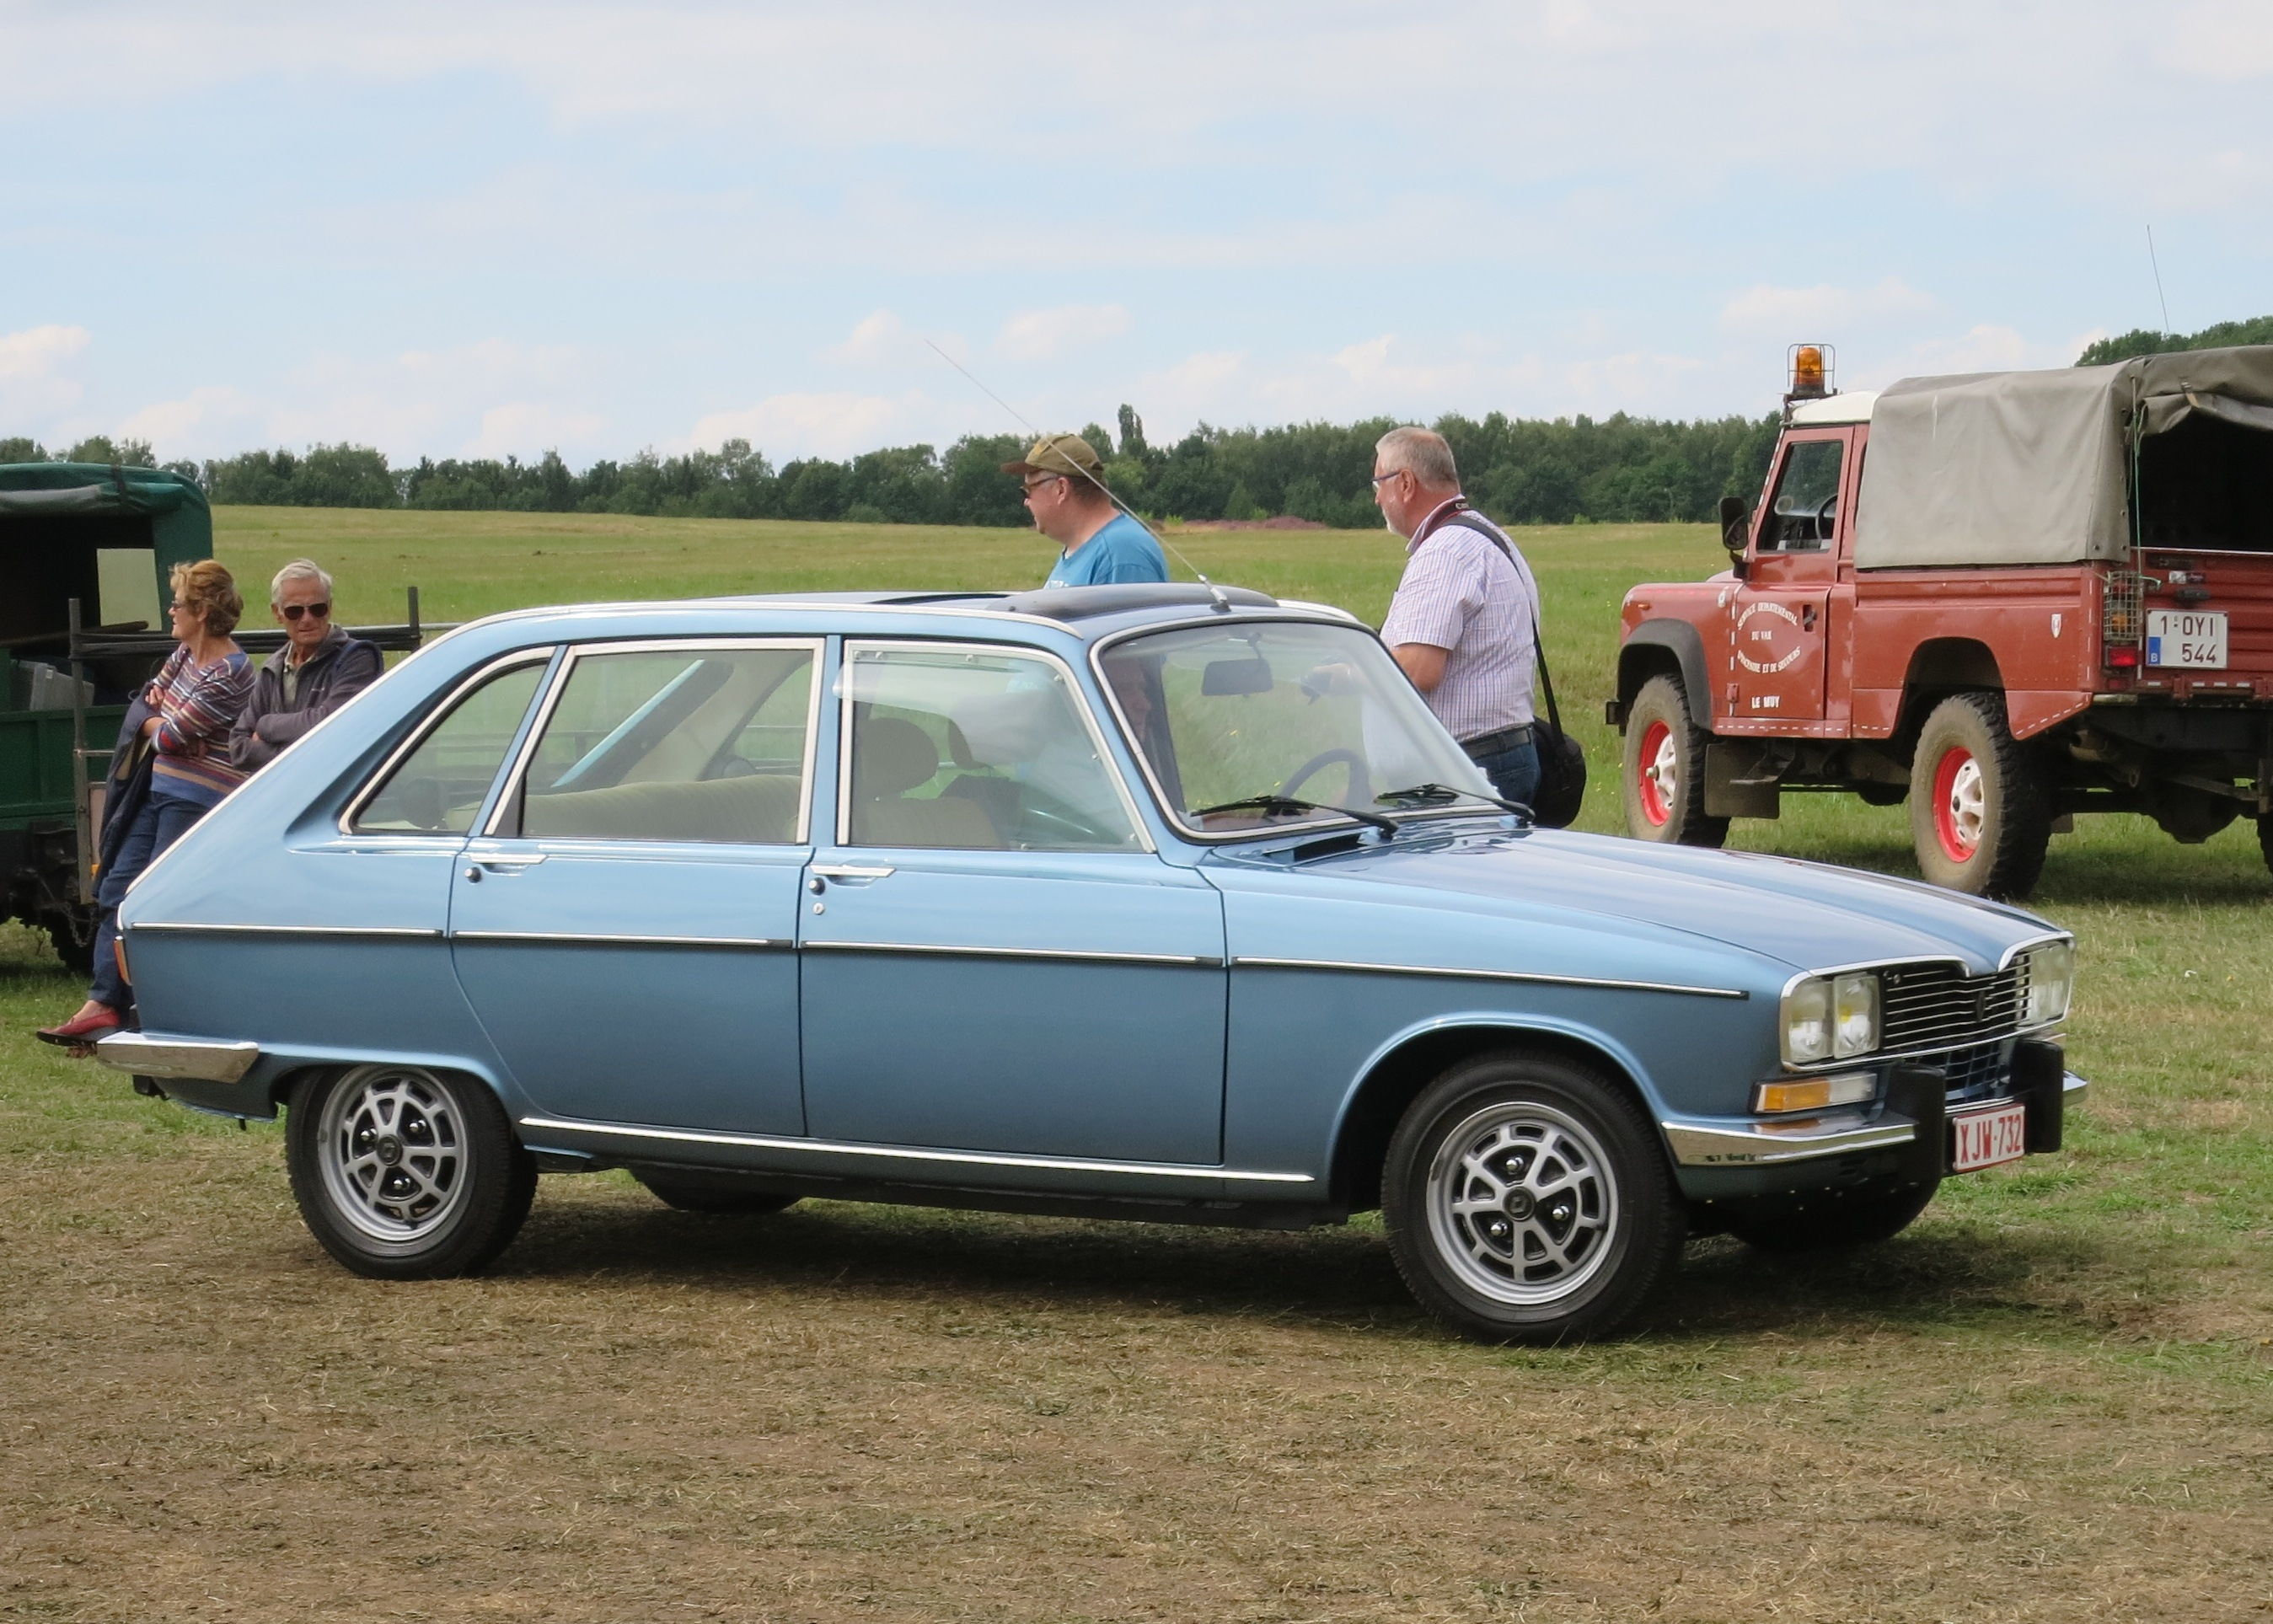 file renault 16tx arriving schaffen diest jpg wikimedia commons. Black Bedroom Furniture Sets. Home Design Ideas